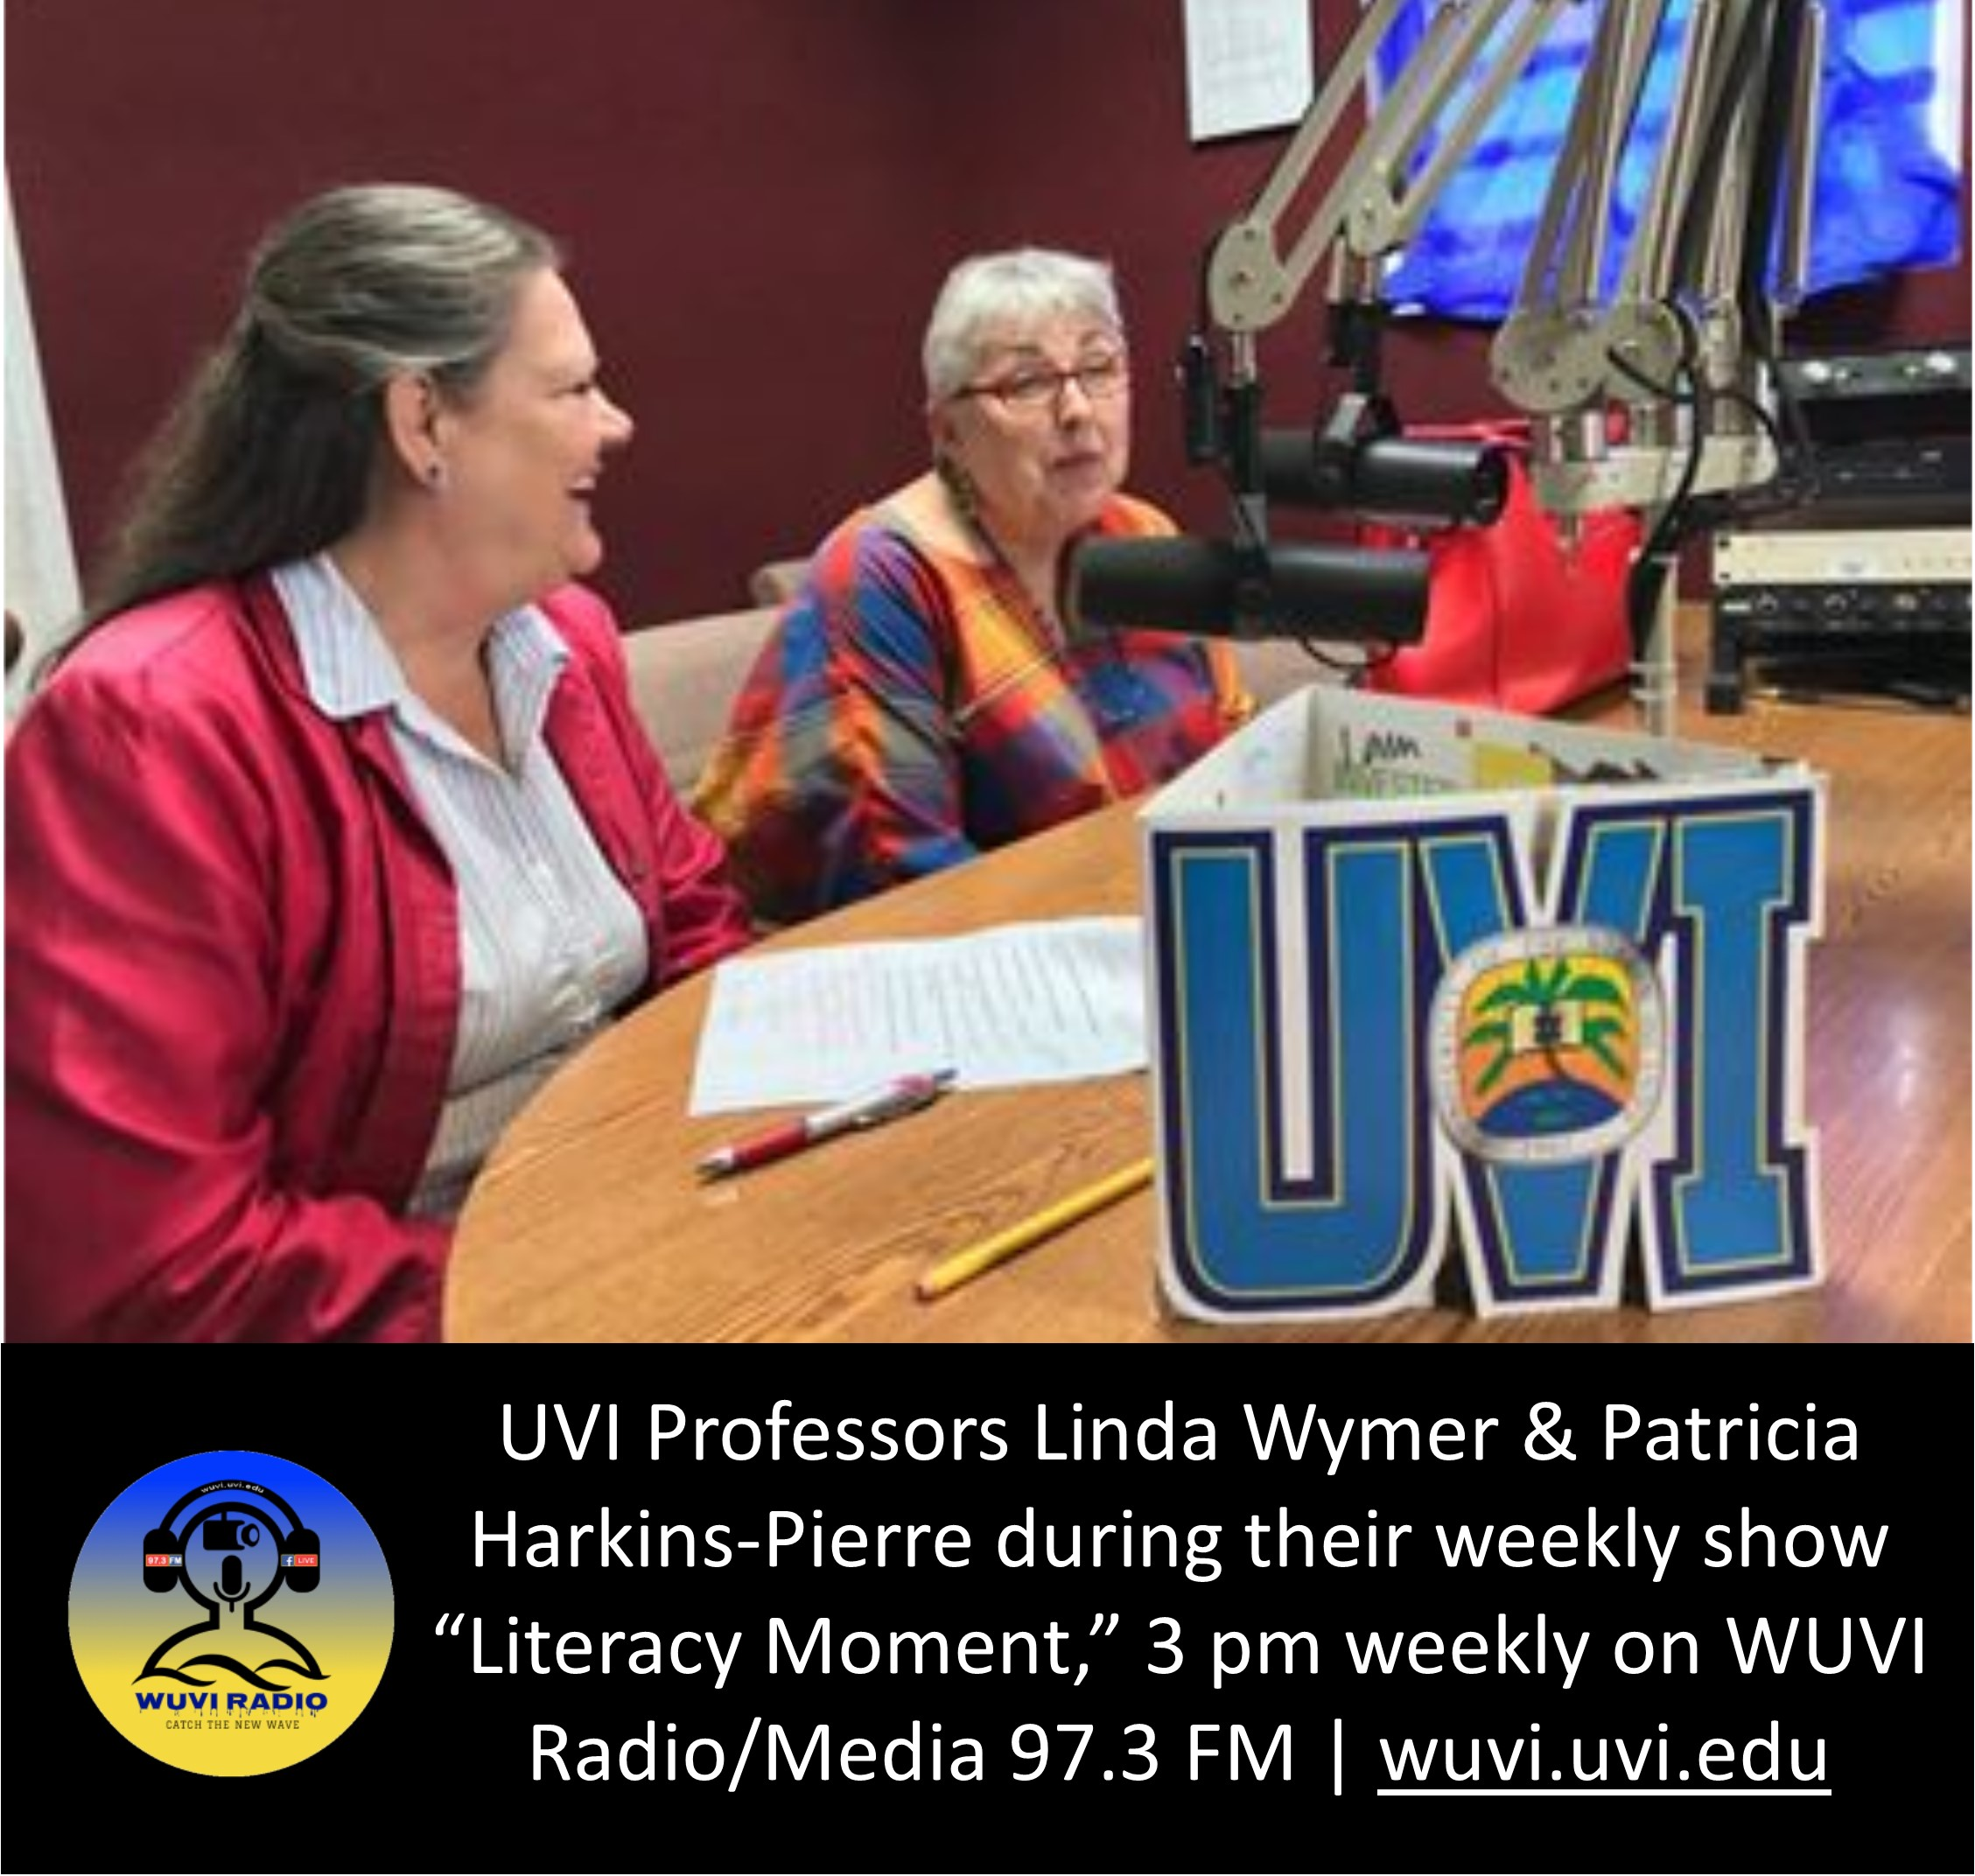 Professors Patricia Harkins-Pierre and Linda Wymer host their show Literacy Moment